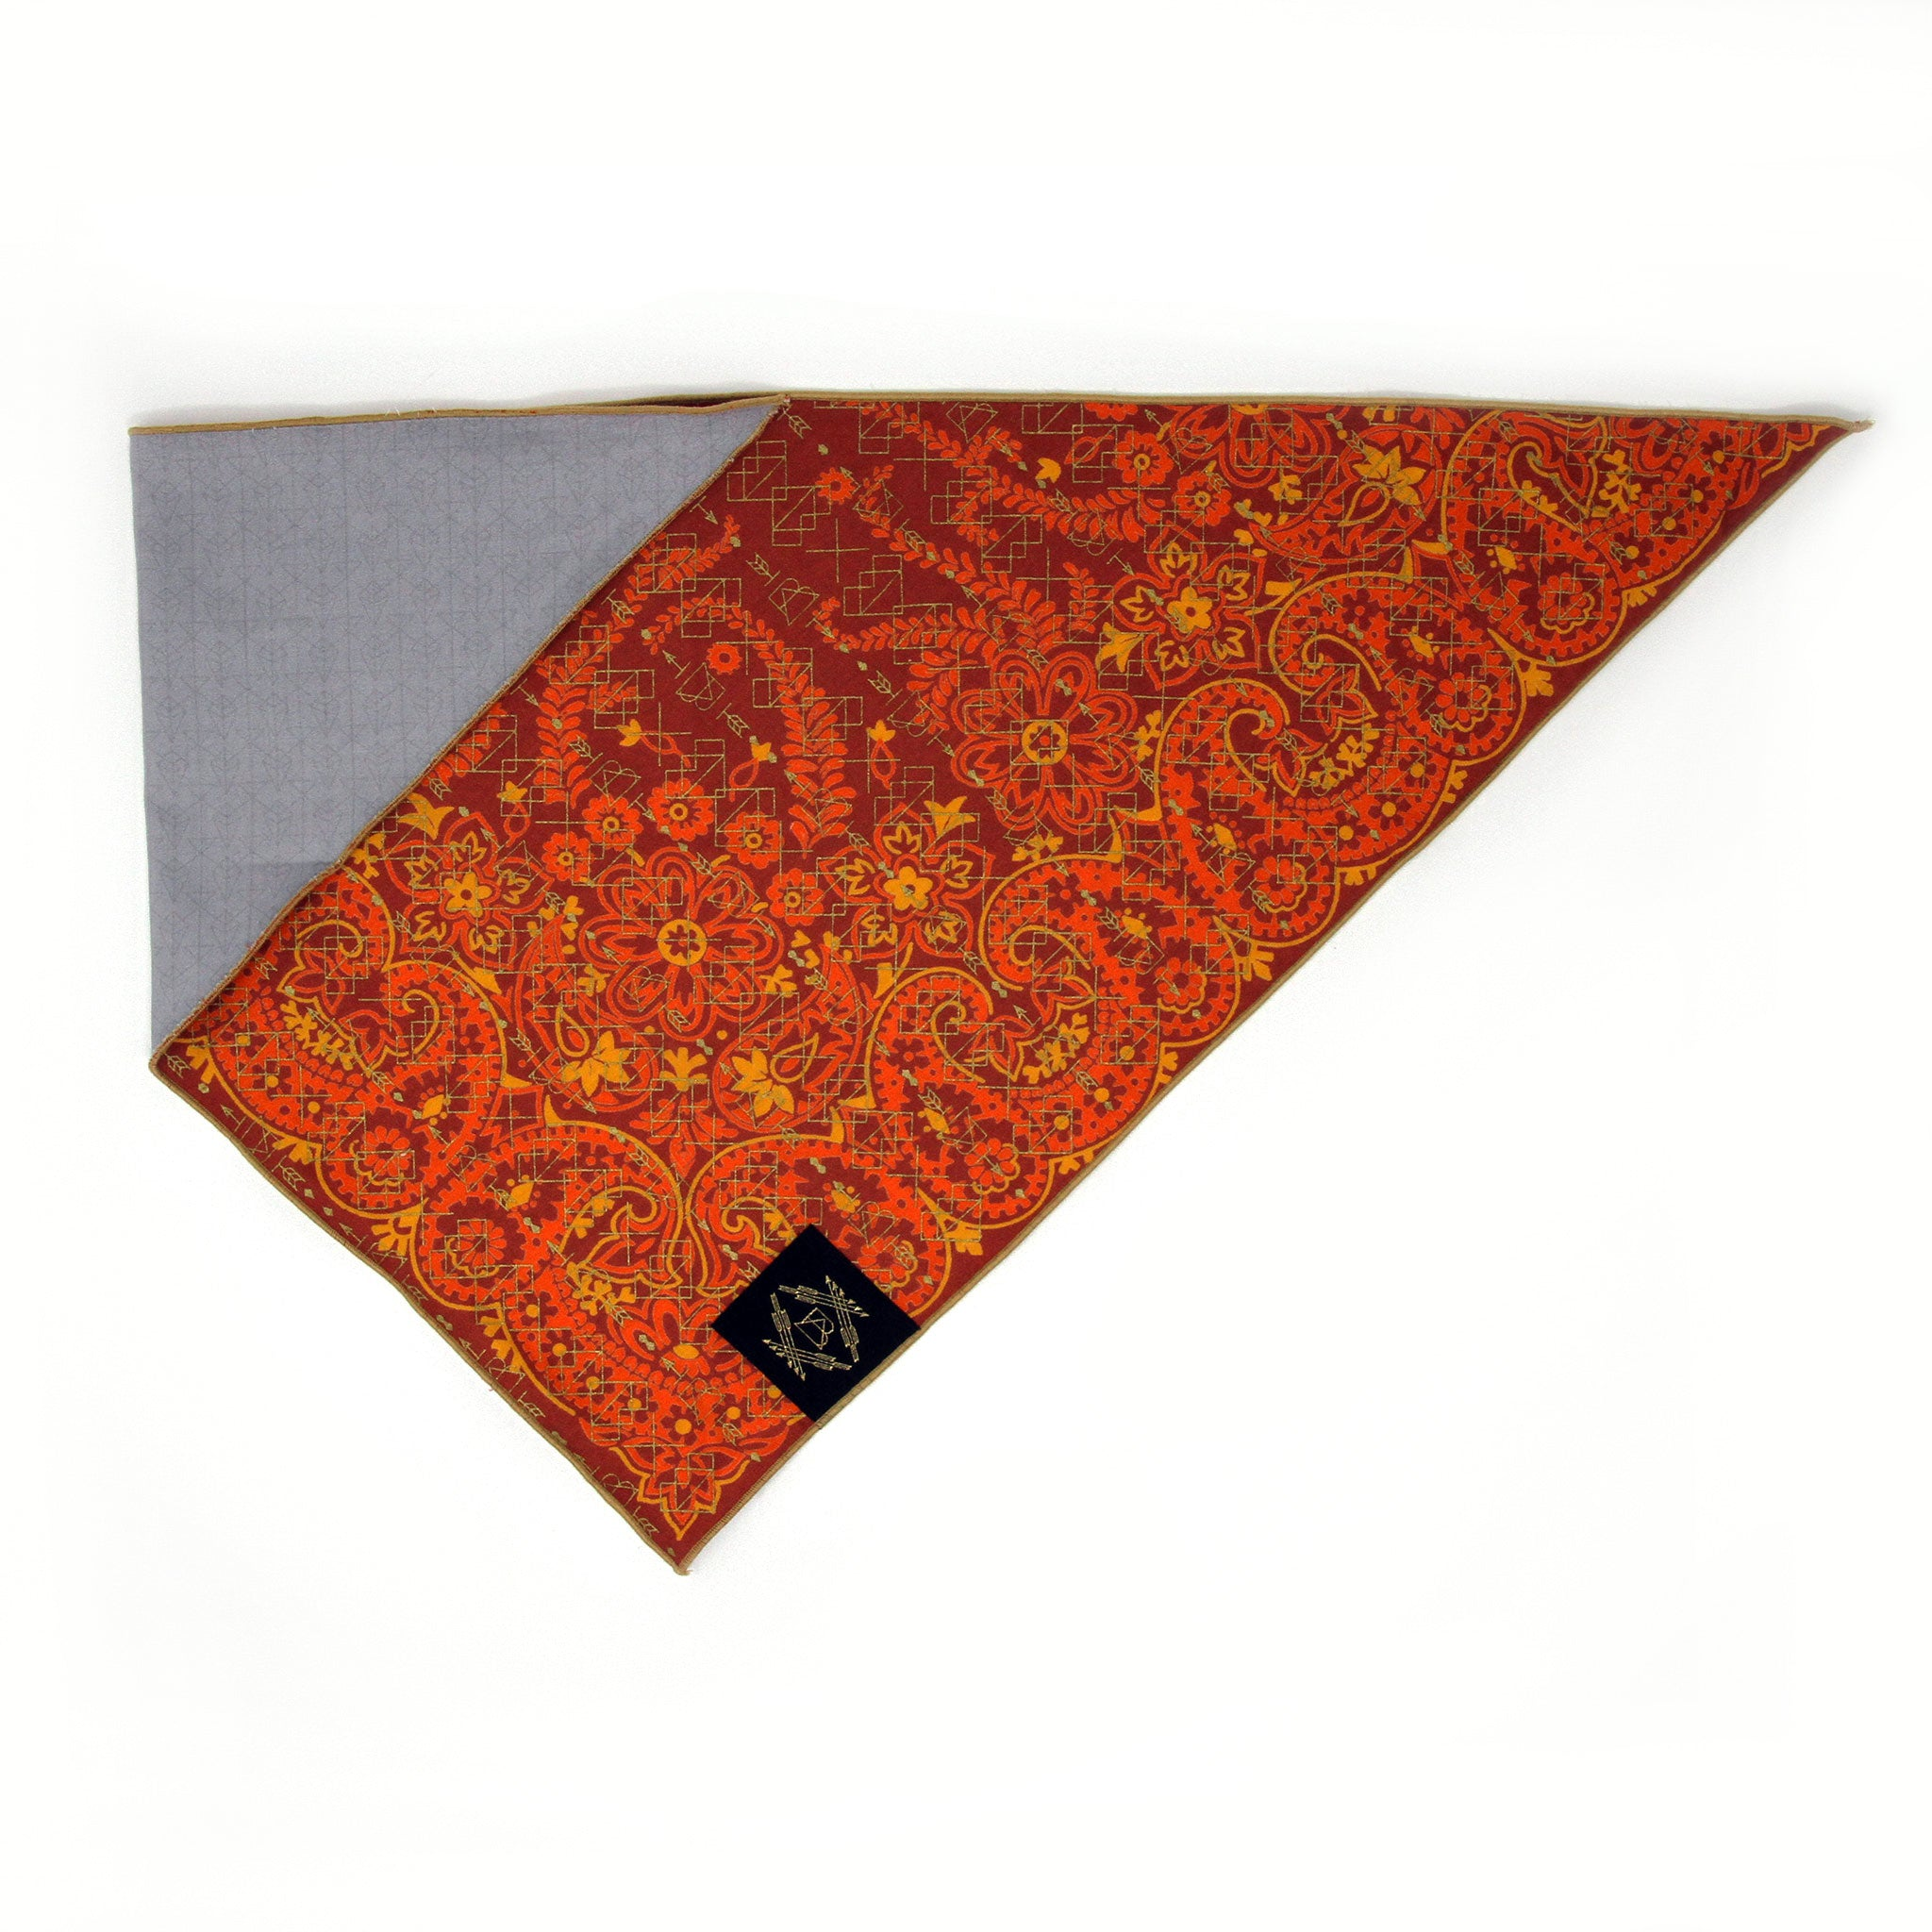 Burnt Orange Vintage Dog Bandana with Metallic Gold Screen Printing